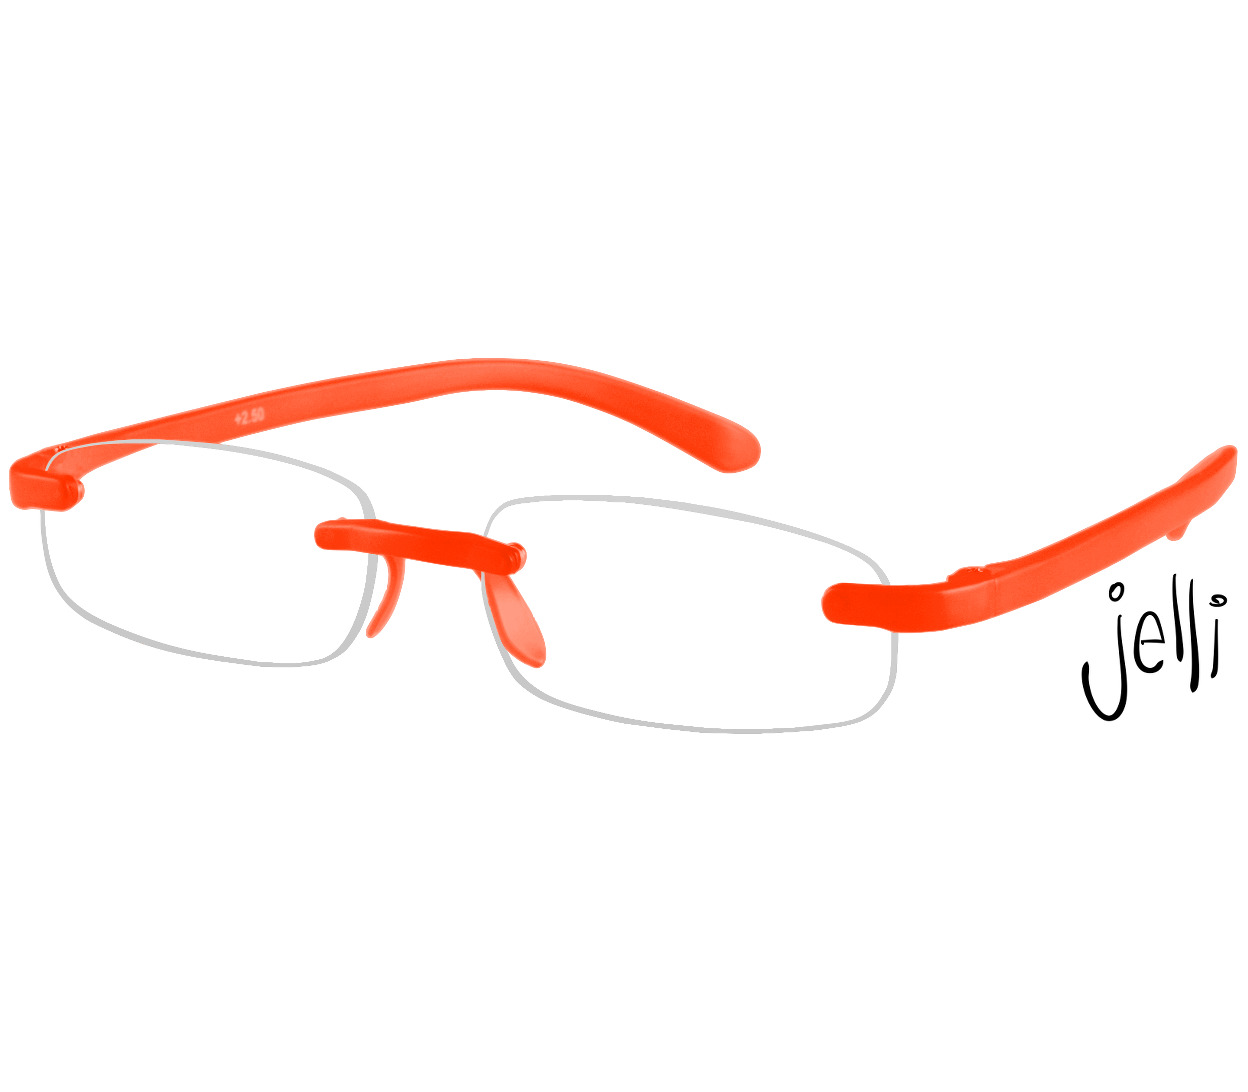 Main Image (Angle) - Jelli Neon (Orange) Reading Glasses